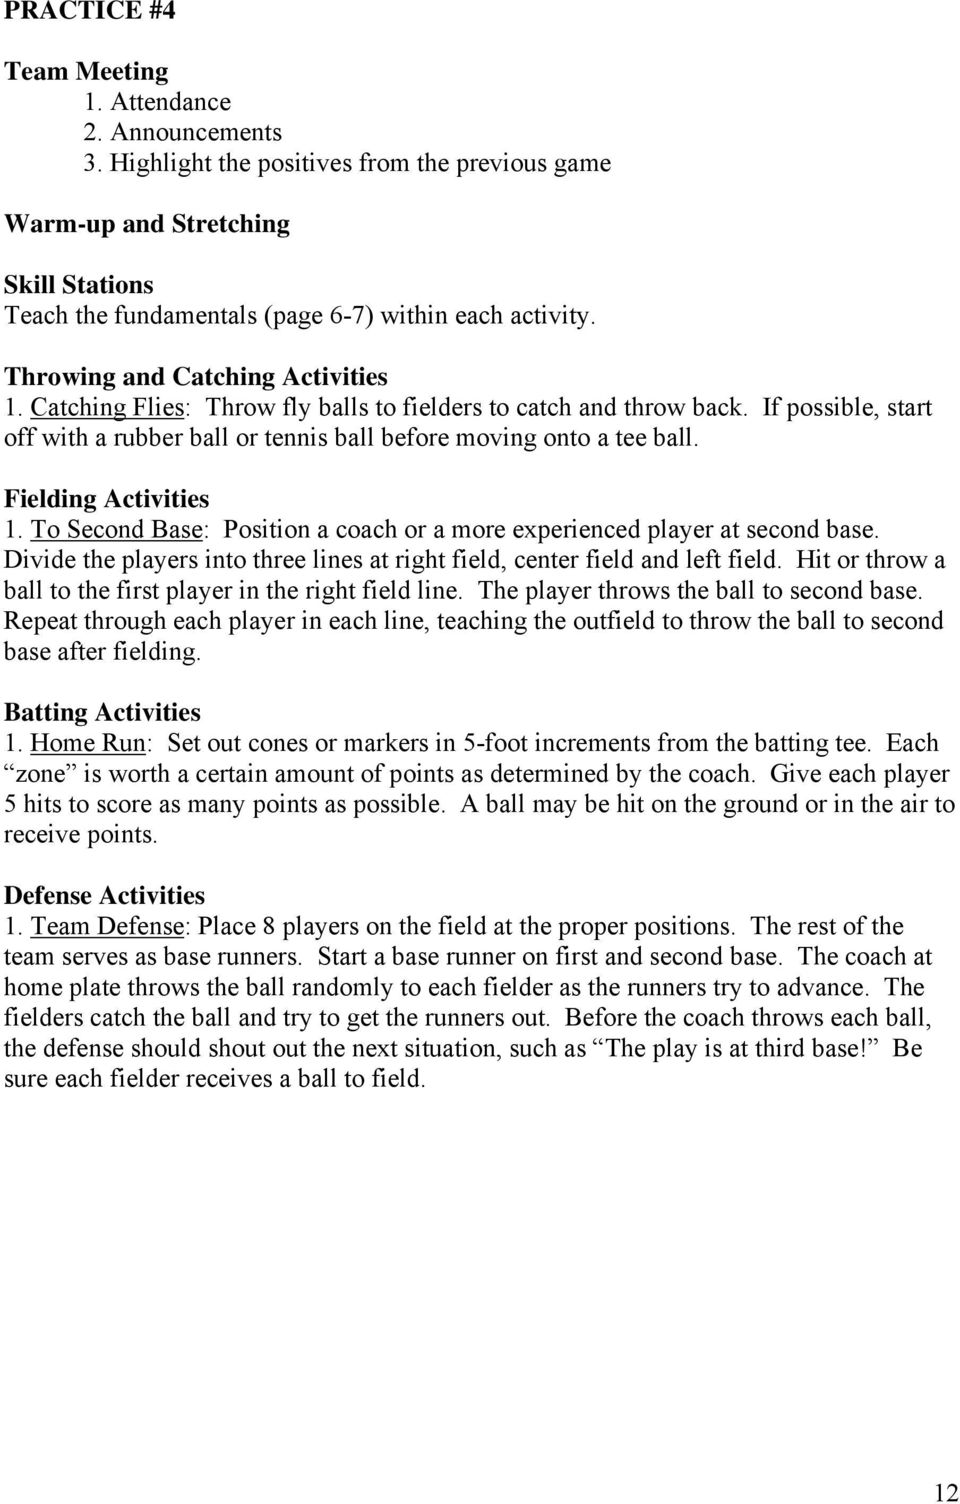 Fielding Activities 1. To Second Base: Position a coach or a more experienced player at second base. Divide the players into three lines at right field, center field and left field.